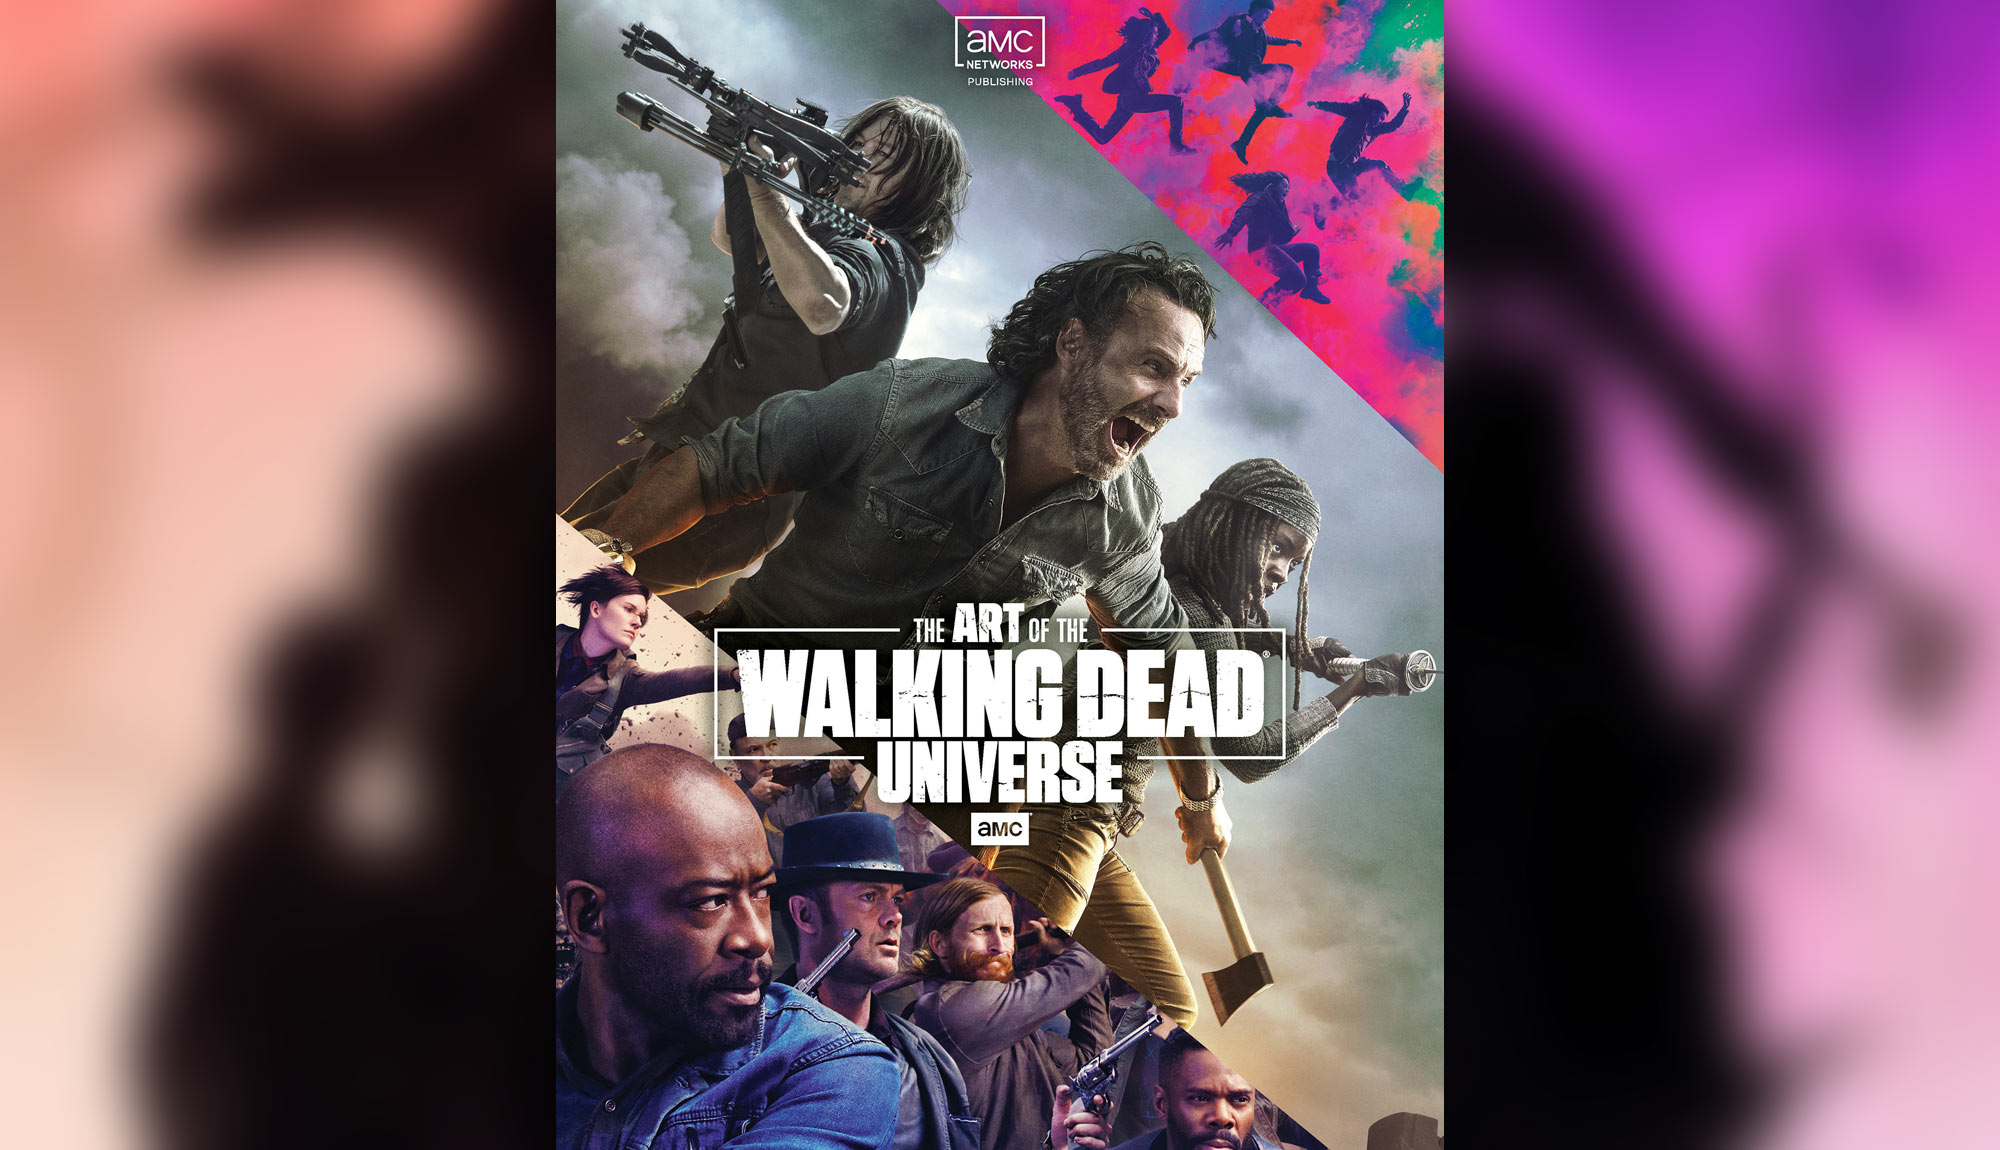 AMC Networks & Skybound Announce THE ART OF AMC'S THE WALKING DEAD UNIVERSE - Skybound Entertainment